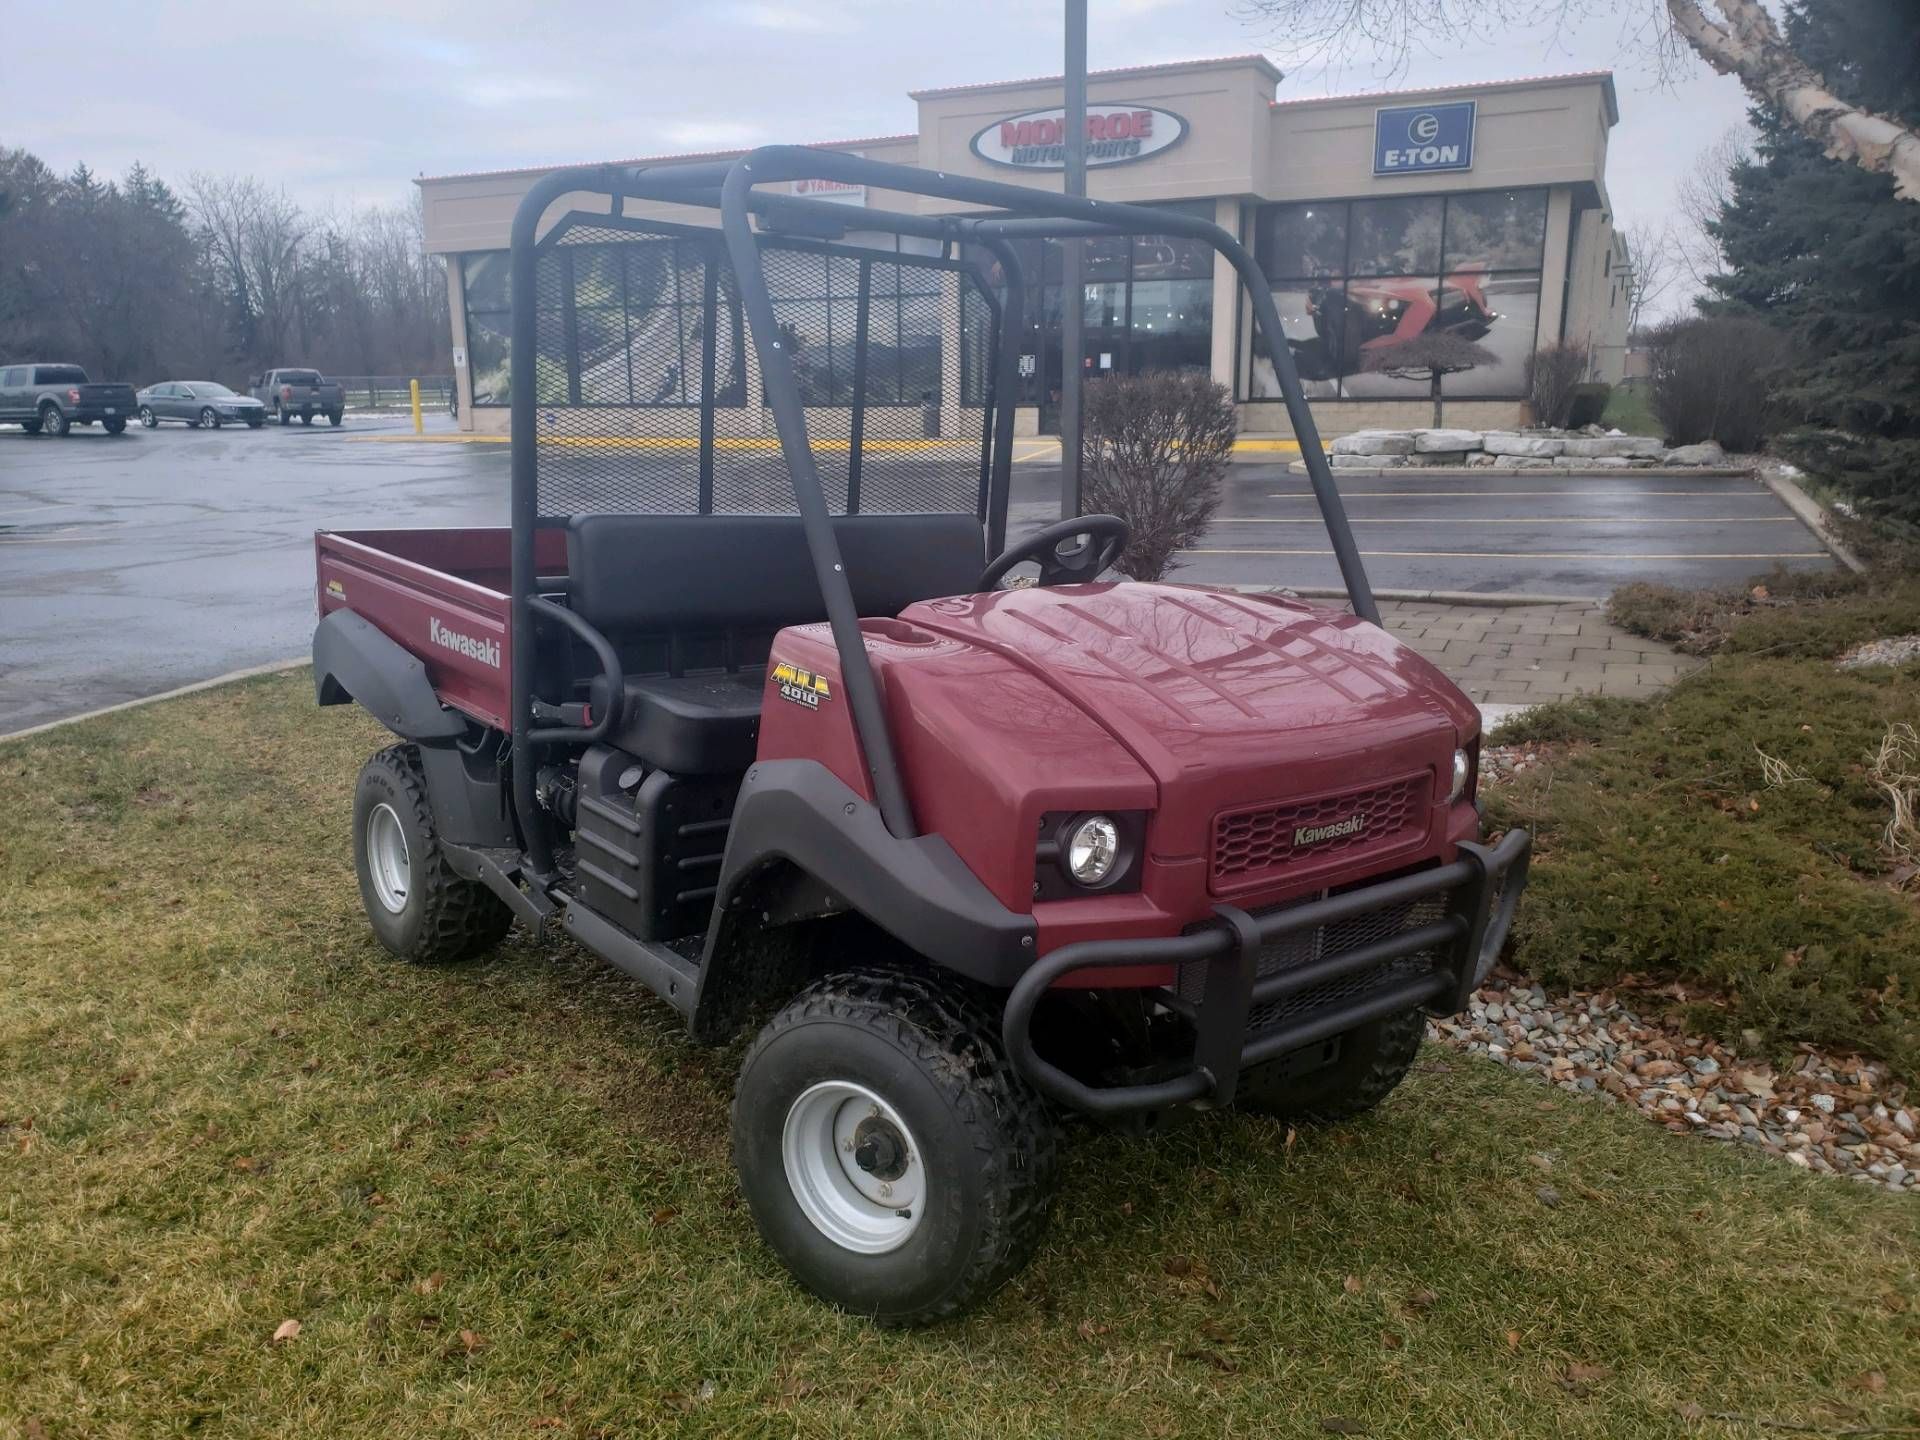 2013 Kawasaki Mule™ 4010 4x4 in Monroe, Michigan - Photo 1